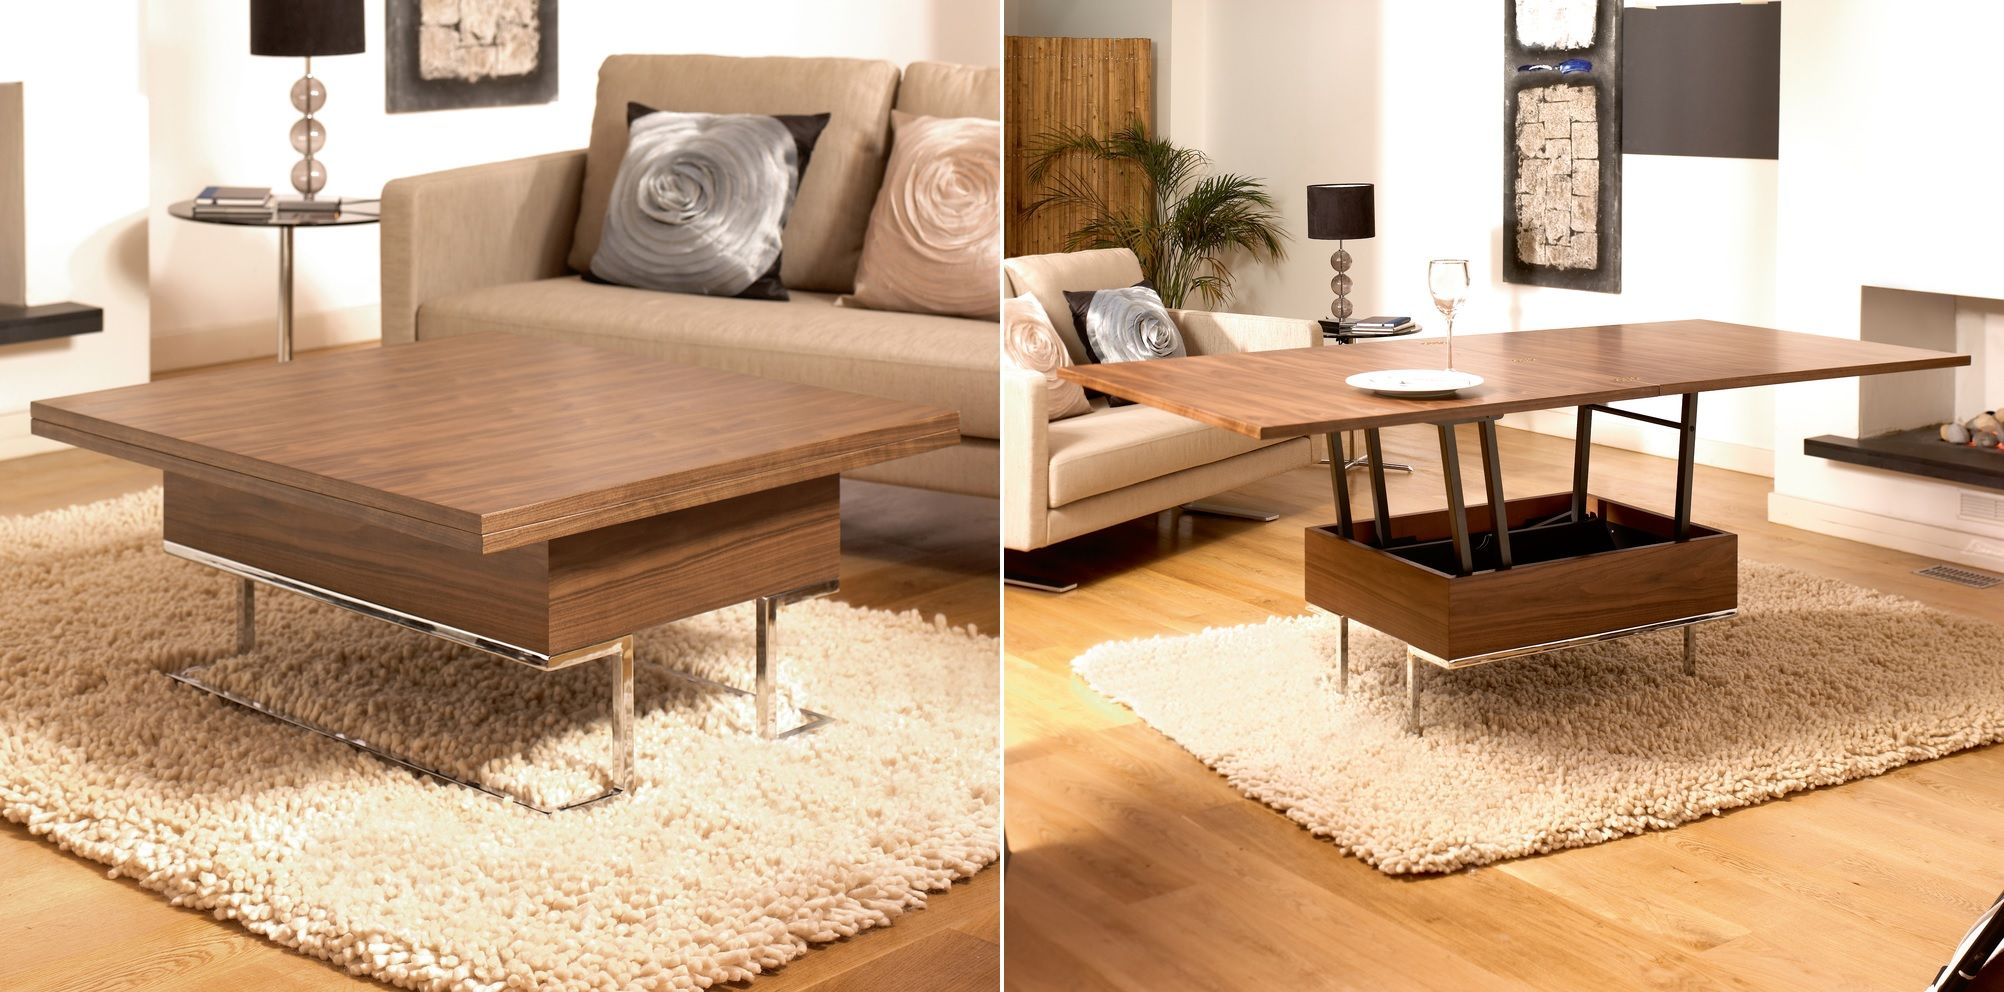 More Functions In A Compact Design Convertible Coffee Tables - Buc-multifunction-coffee-table-by-discoh